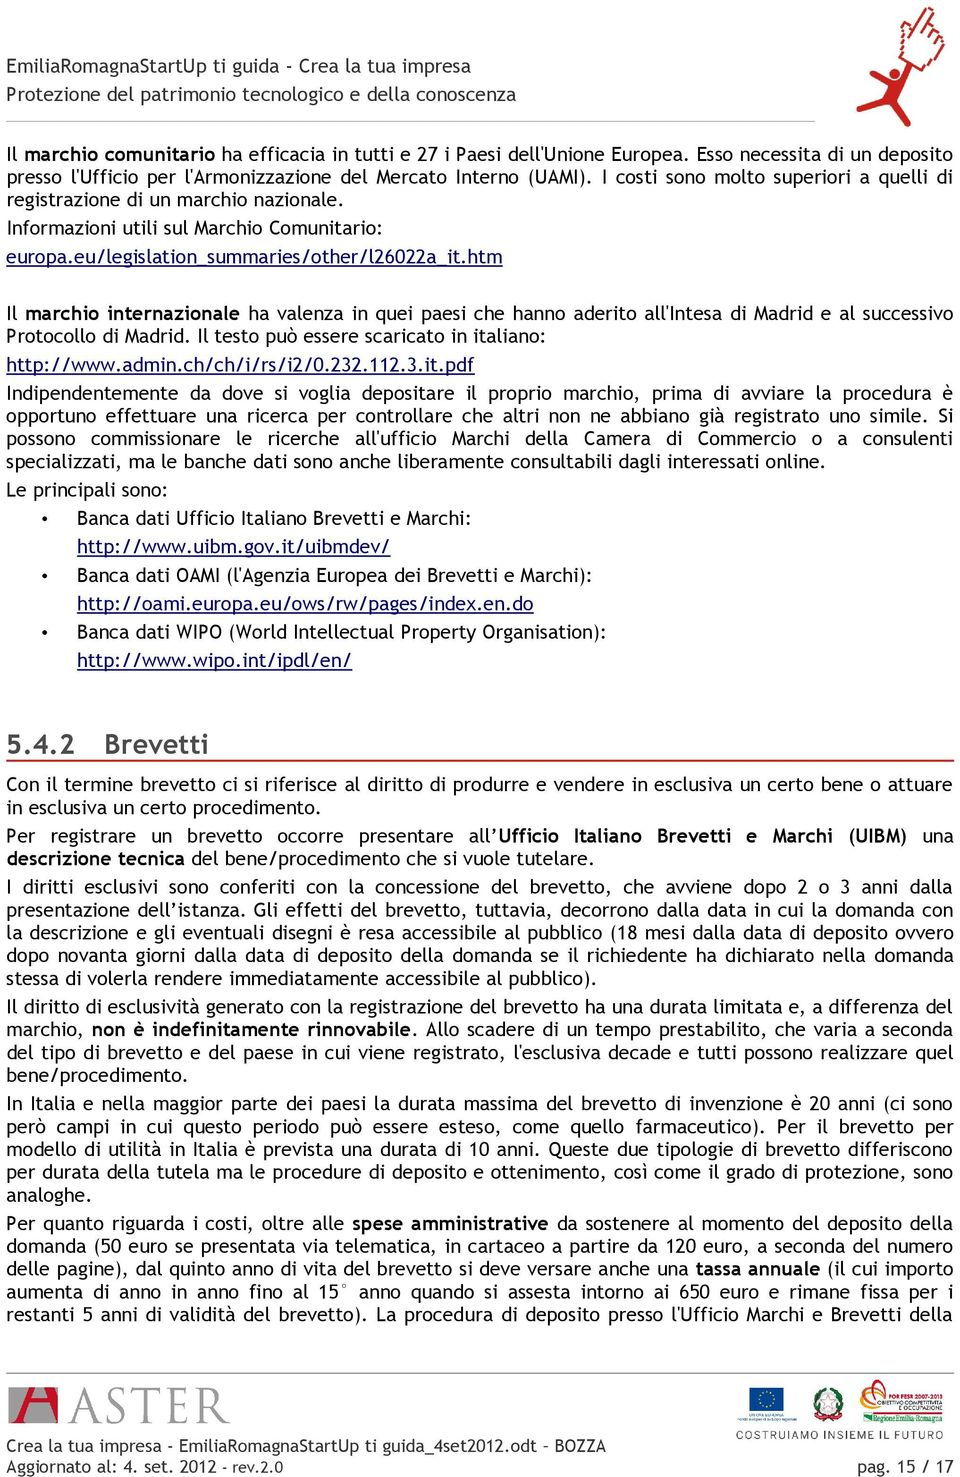 Informazioni utili sul Marchio Comunitario: europa.eu/legislation_summaries/other/l26022a_it.